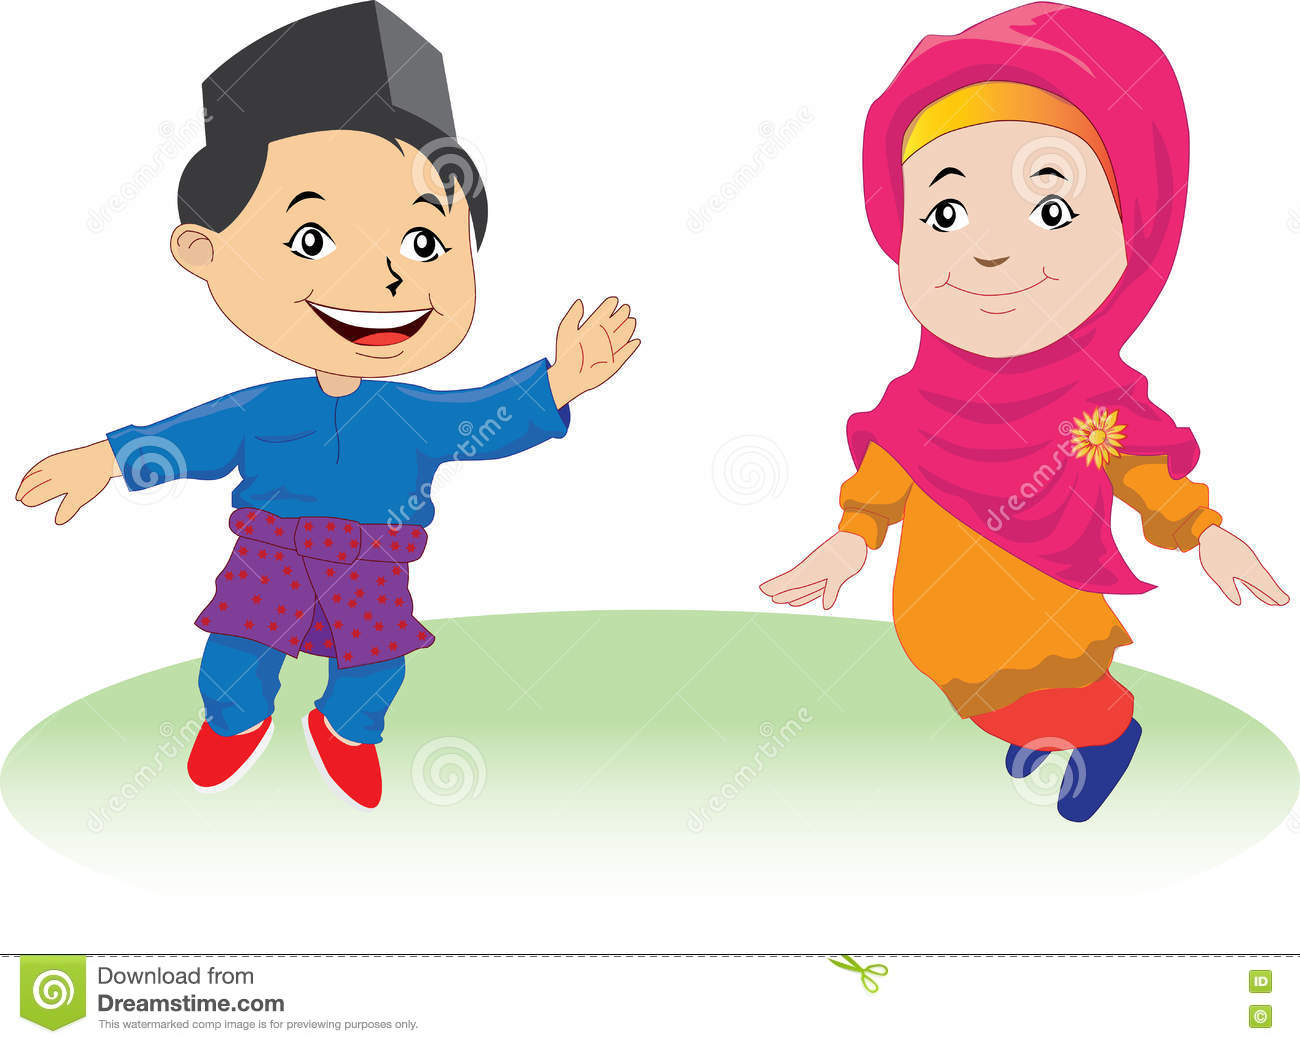 Melayu Children In Patani 01 Stock Vector - Illustration ...